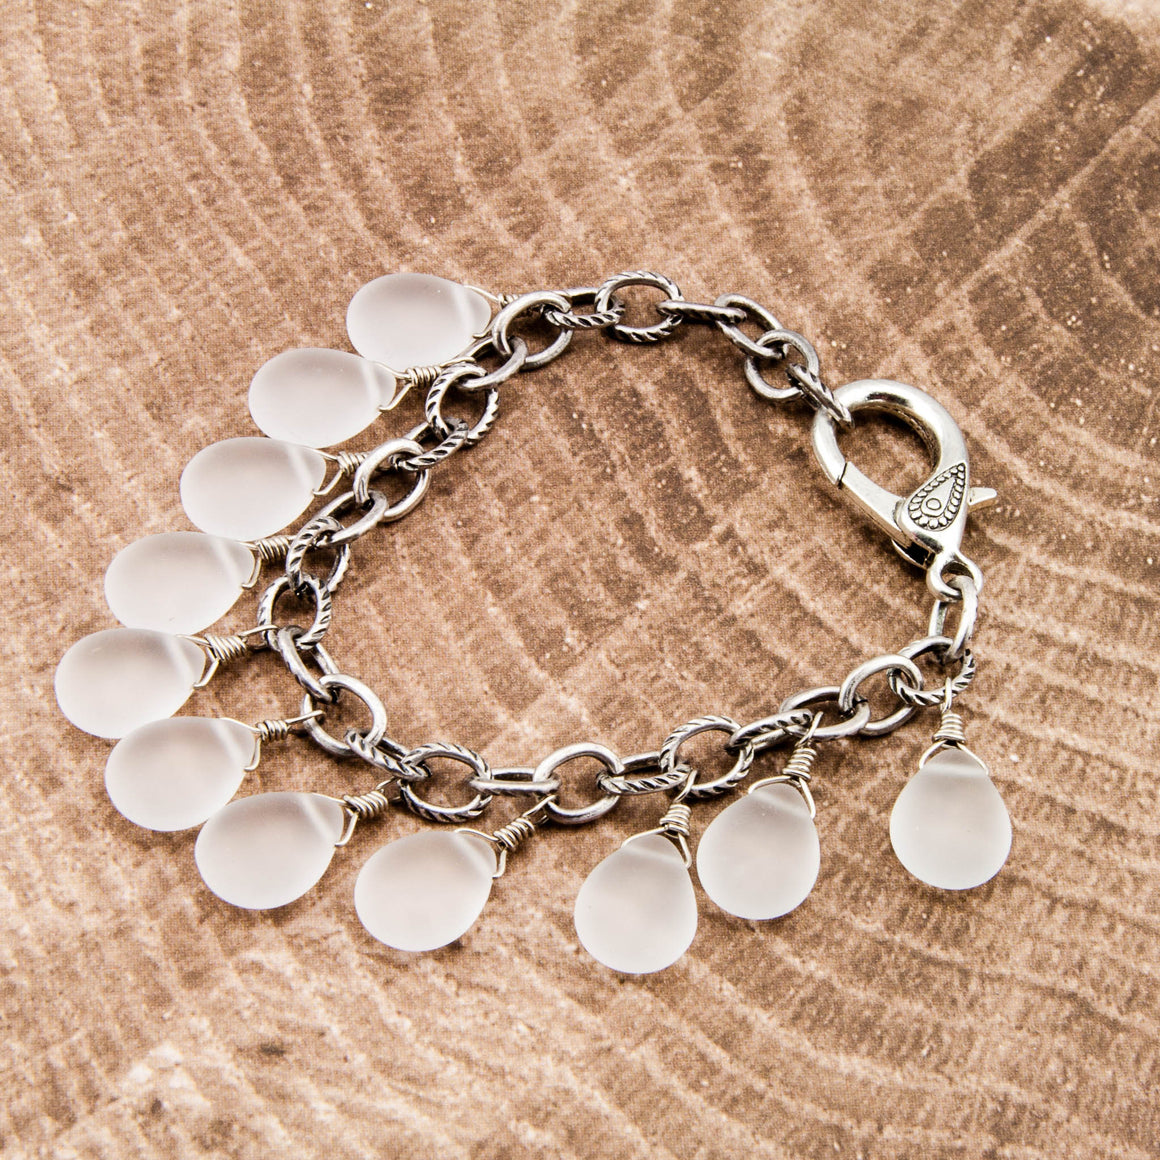 Morning Mist Teardrop Bracelet